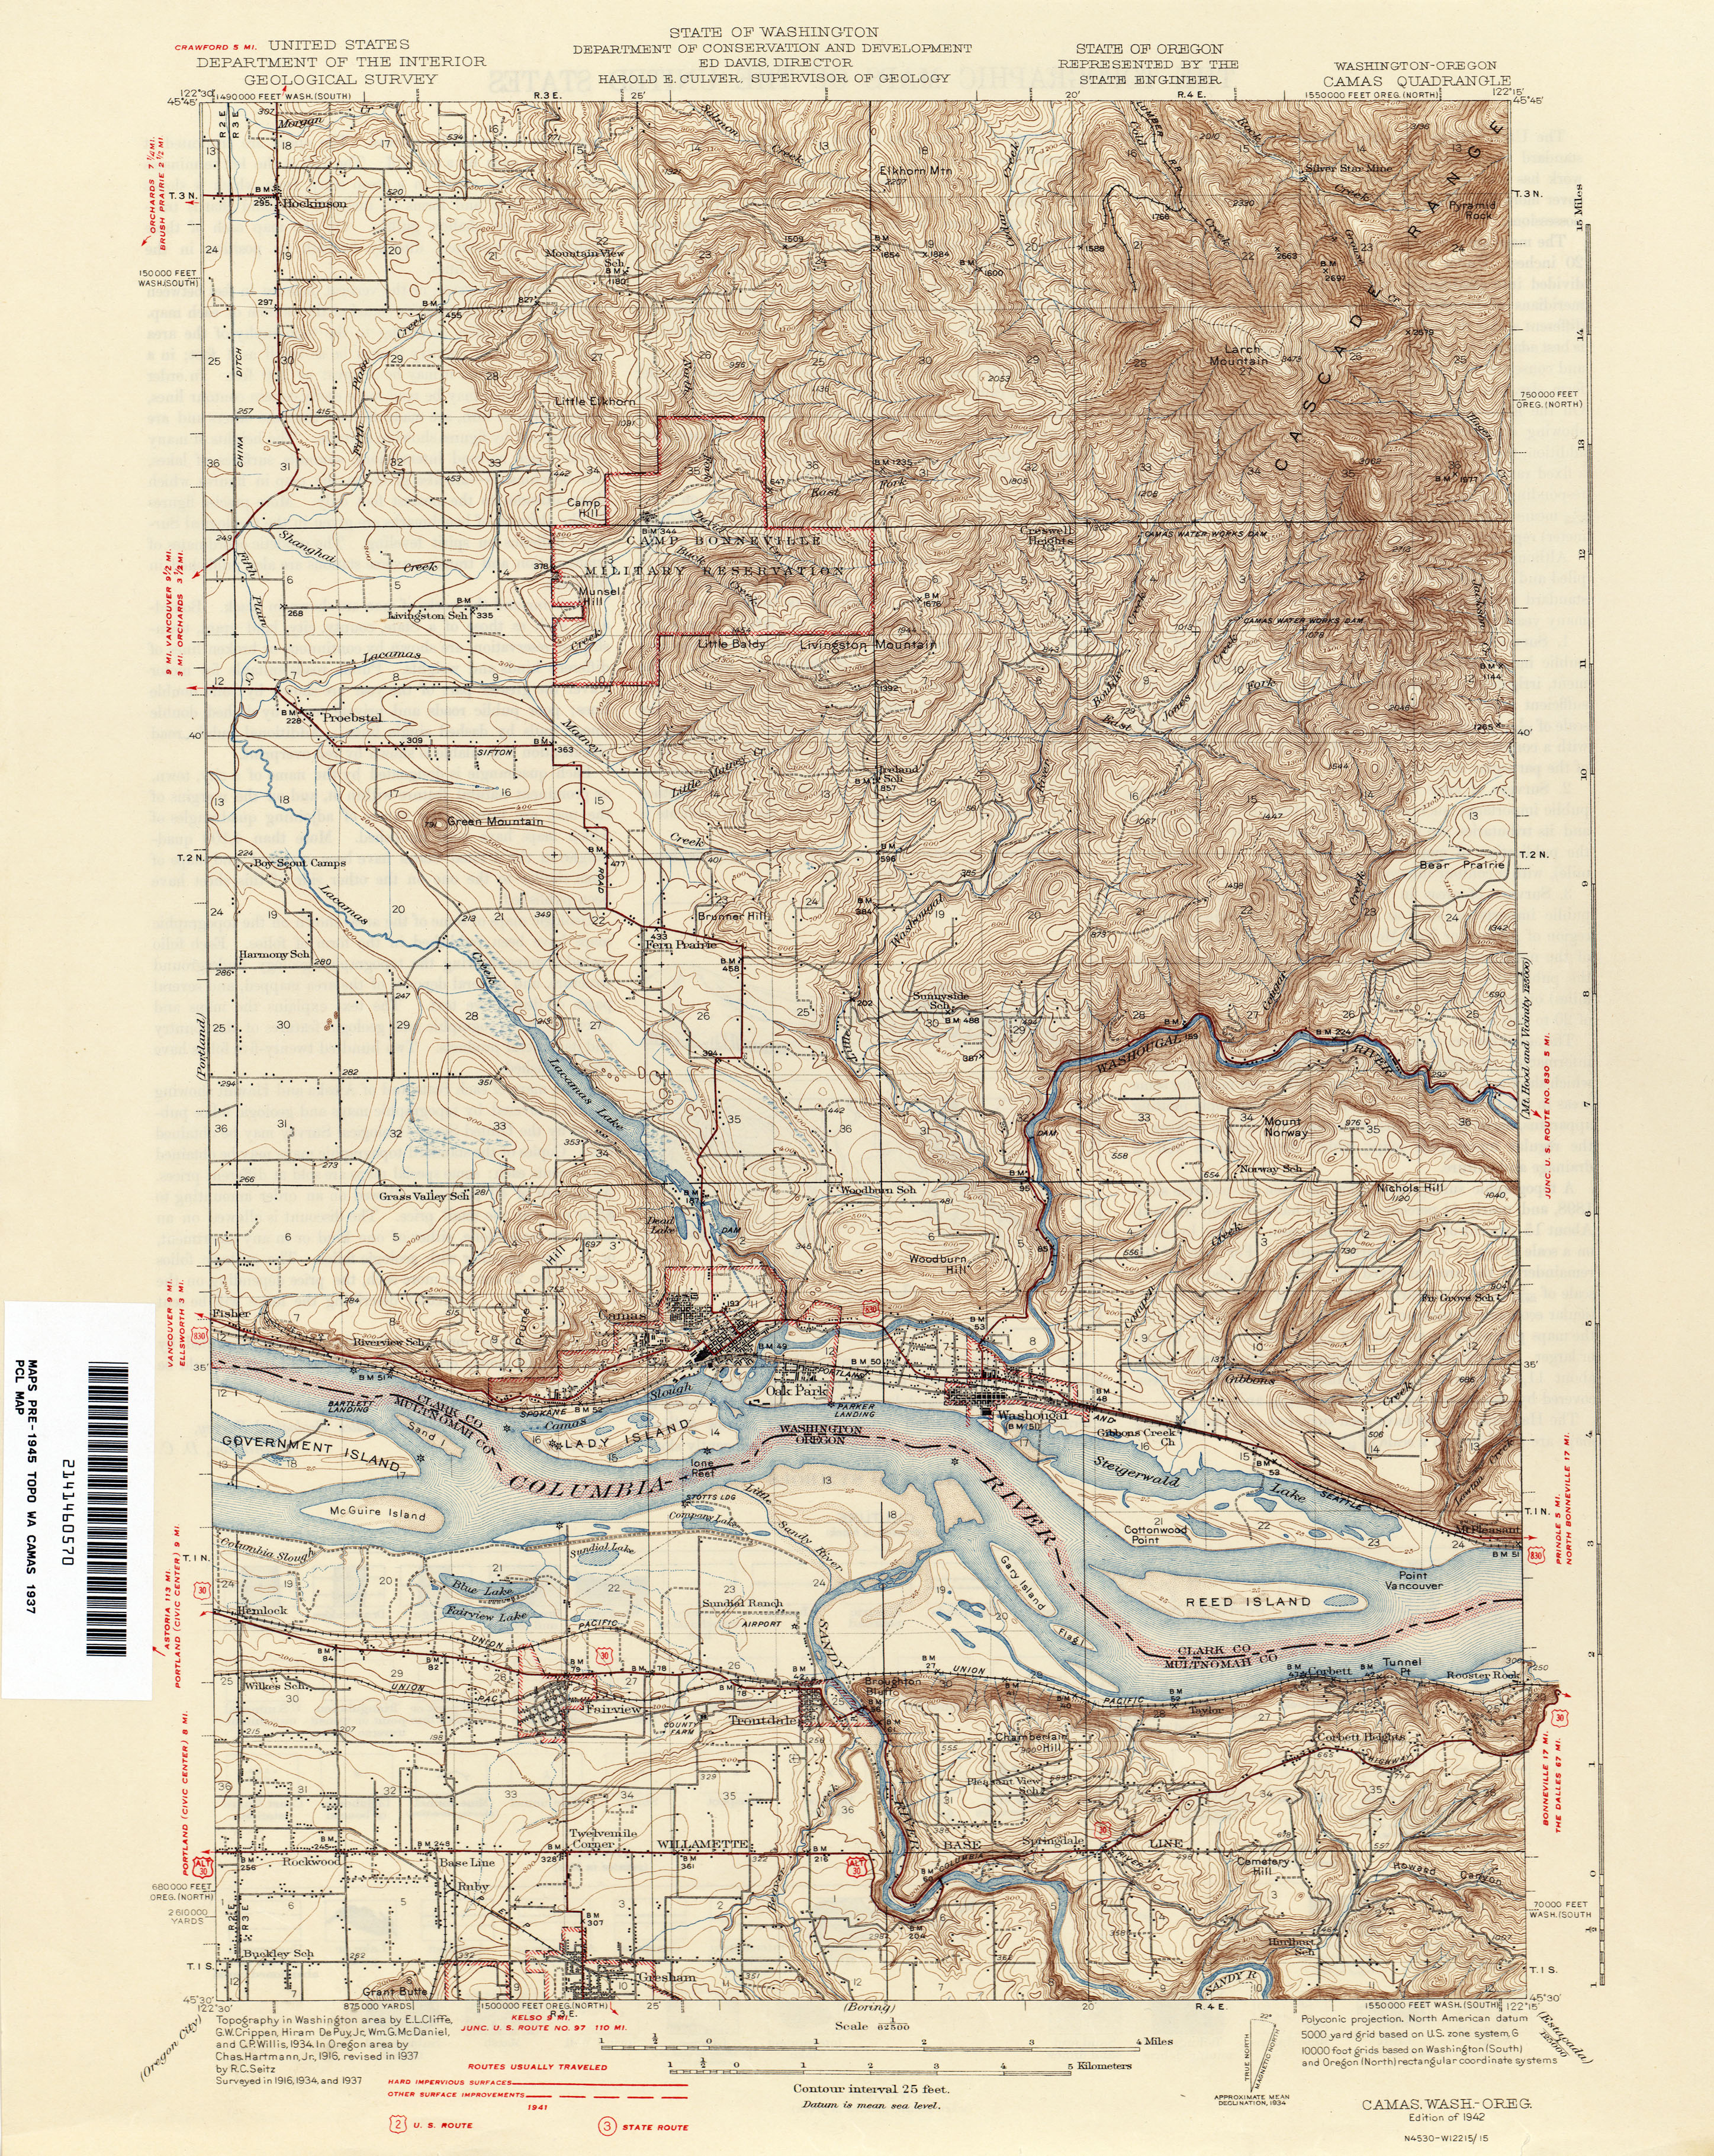 Washington Historical Topographic Maps - Perry-Castañeda Map ...